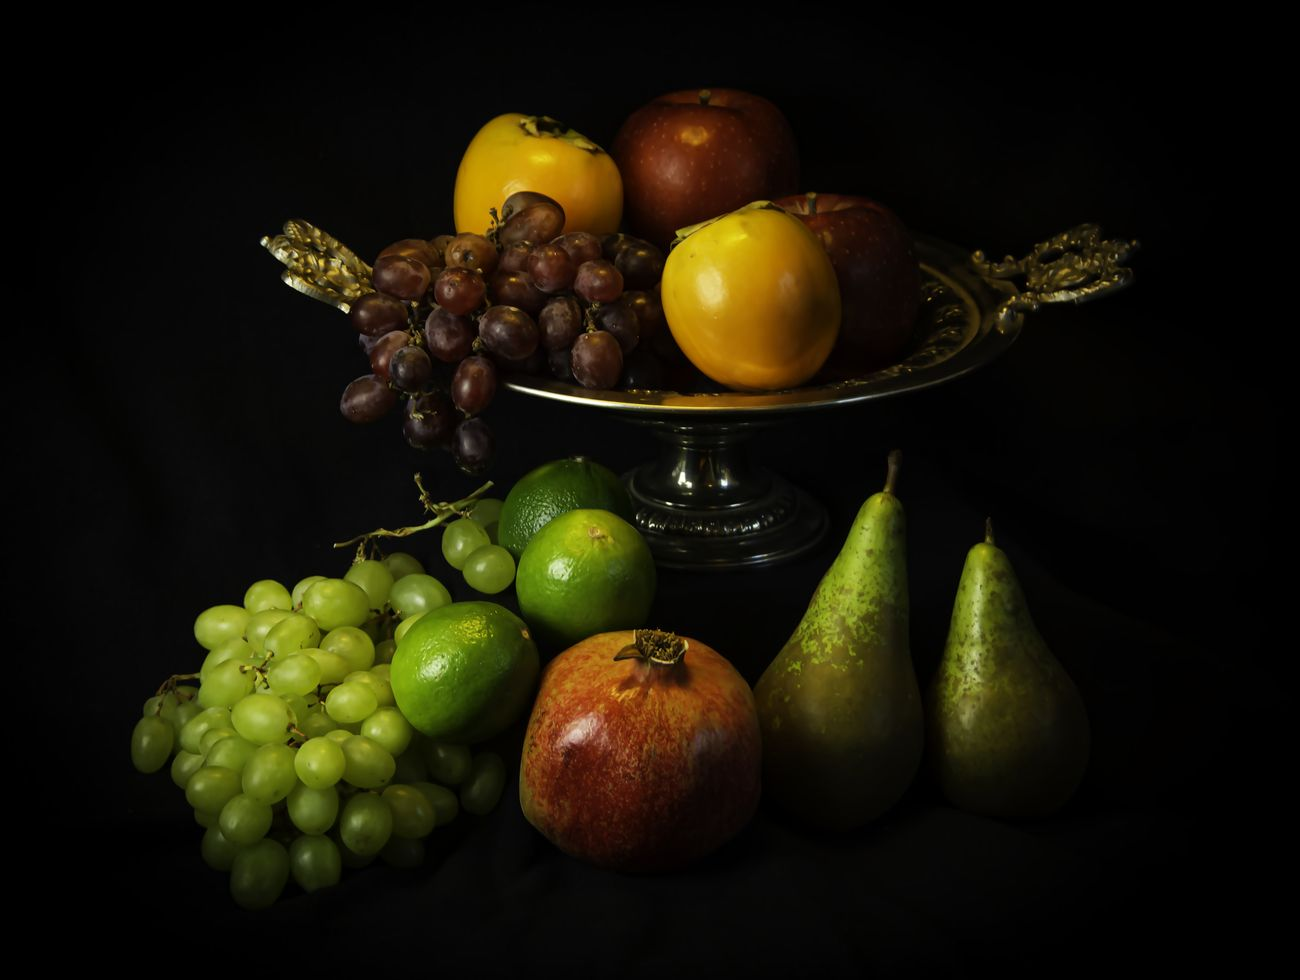 Still life with fruits and an antic bowl against a black background